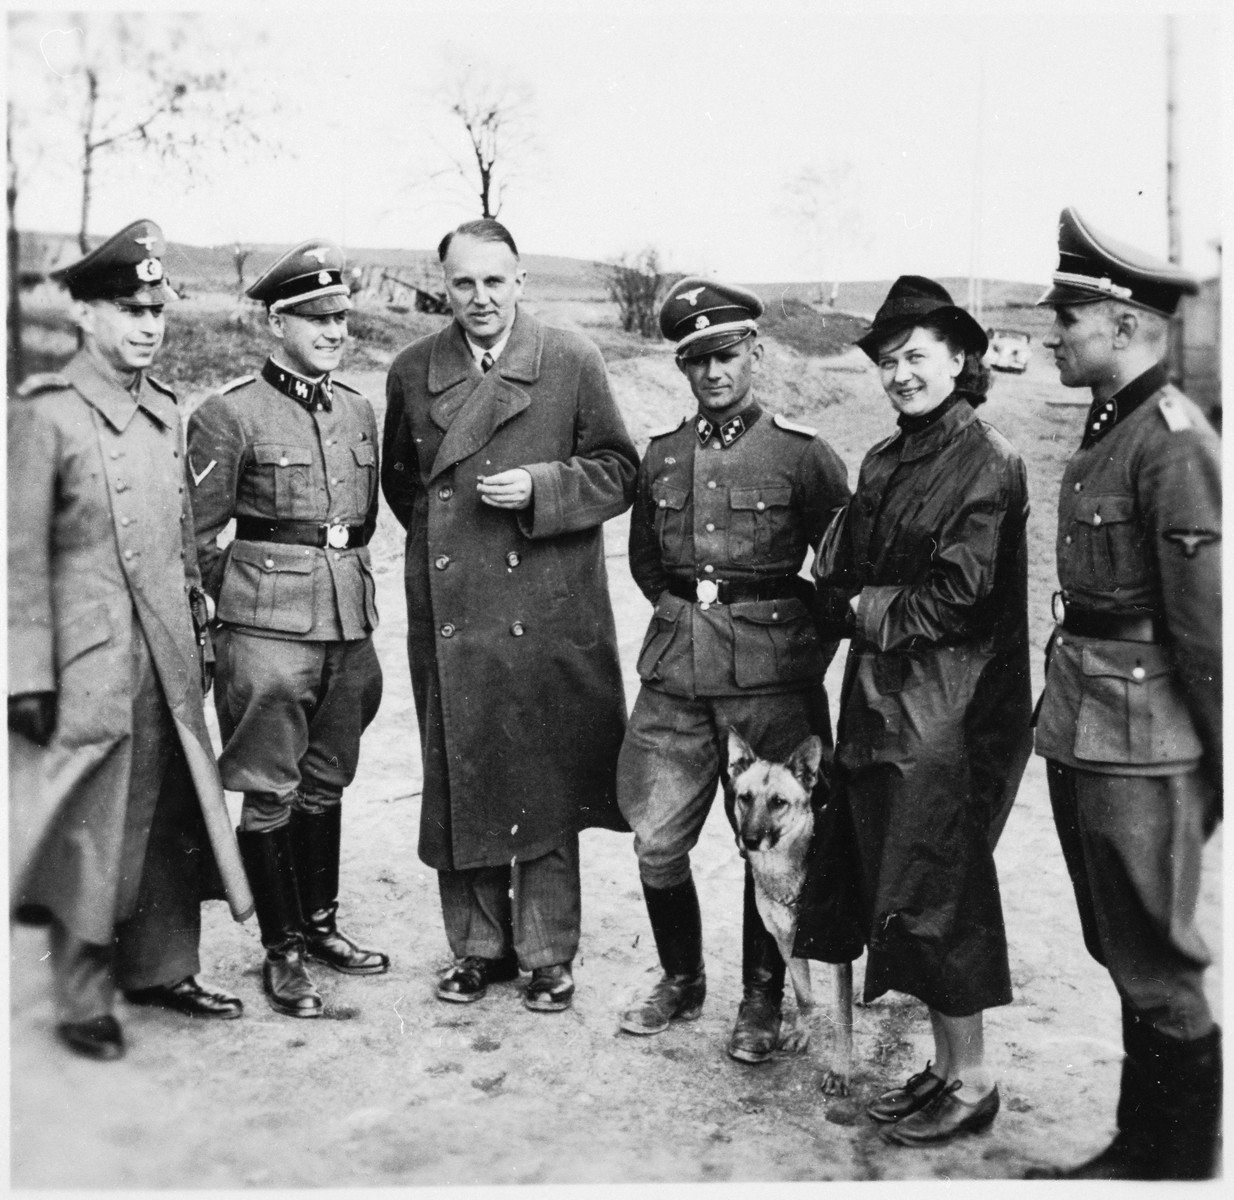 A group of SS officers, a woman and a dog stand on the grounds of the Gross-Rosen concentration camp.  Anton Thumann is pictured third from the right.